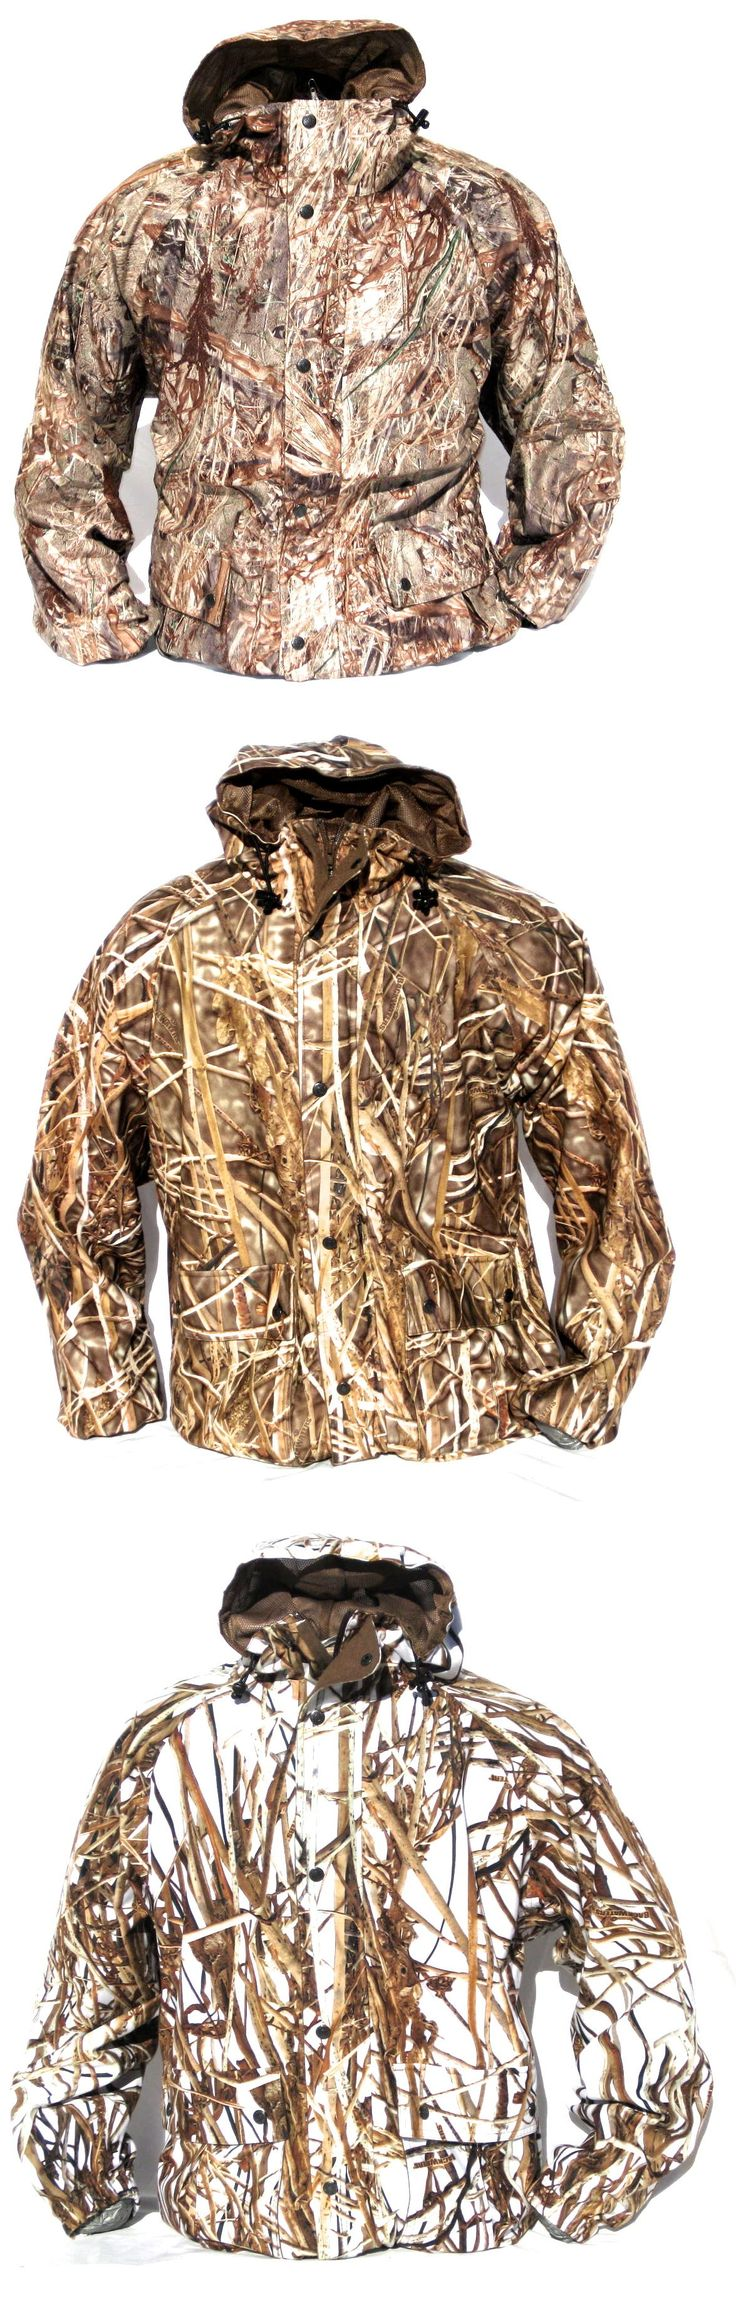 Coats and Jackets 177868: New Cabelas Mossy Oak Duck Blind Waterfowl Waterproof Quiet Pack Hunting Jacket -> BUY IT NOW ONLY: $159.99 on eBay!